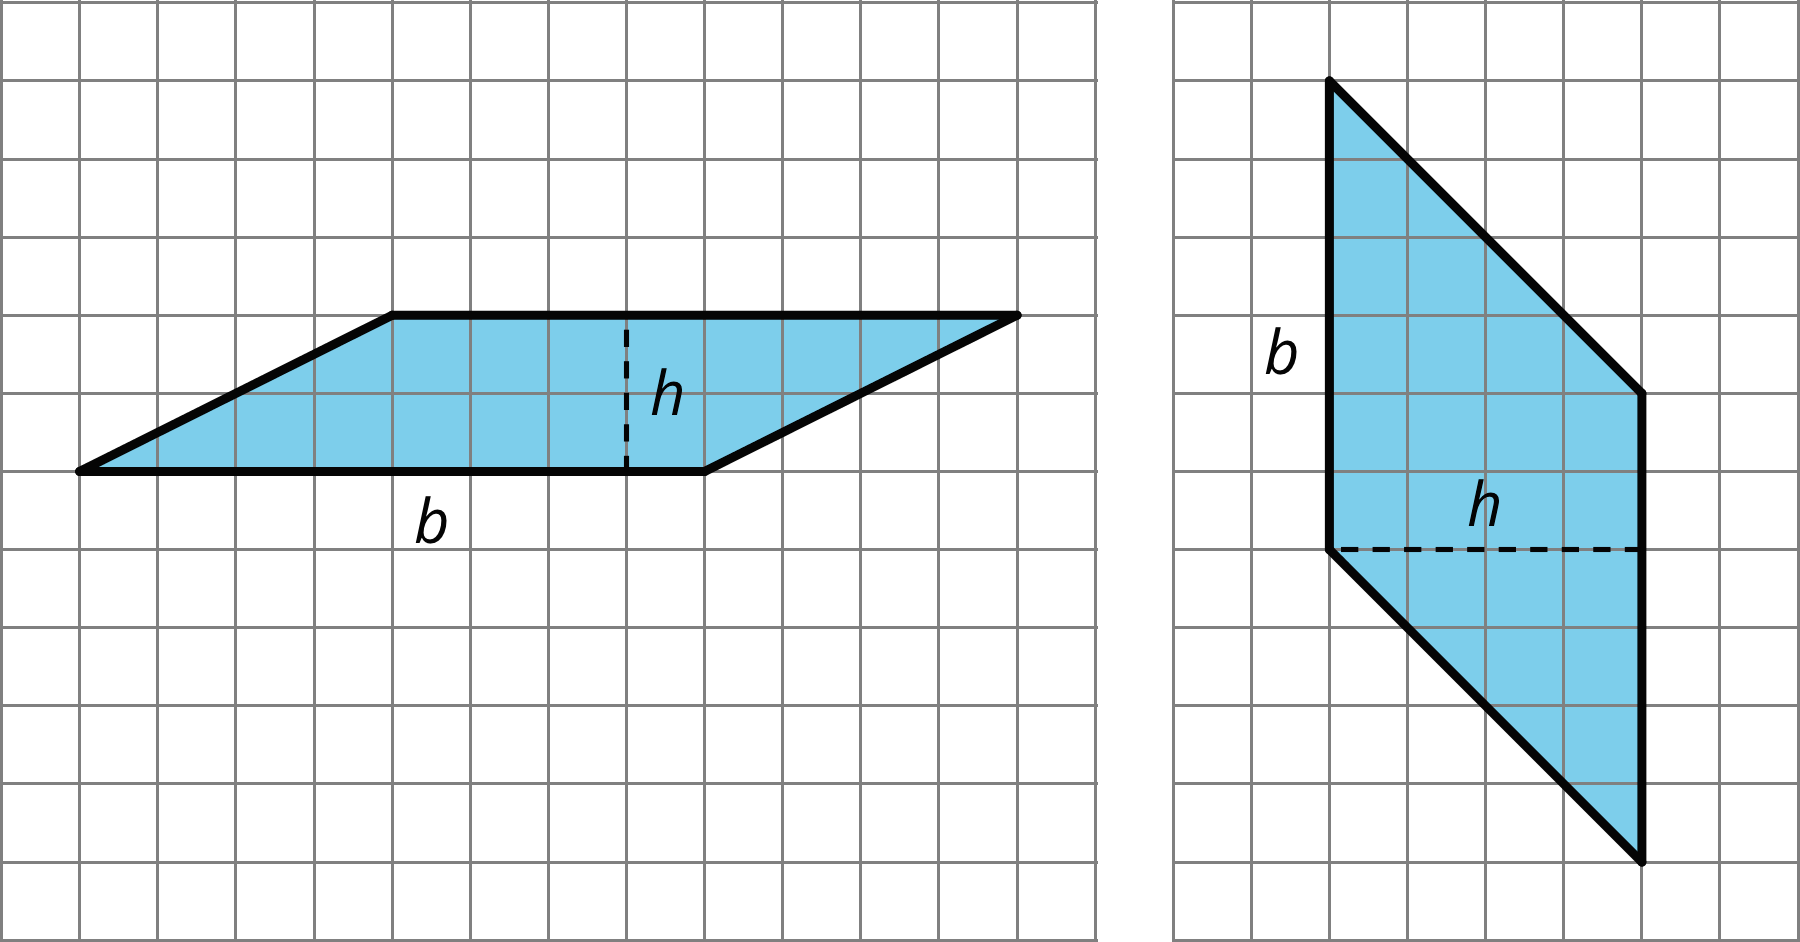 """Two parallelograms drawn on two grids. The first parallelogram has horizontal sides that are each 8 units long with angled sides that rise 2 vertical units over 4 horizontal units. The bottom horizontal side of the shape is labeled """"b"""". A 2-unit perpendicular segment labeled """"h"""" connects the horizontal sides. The second parallelogram has two vertical sides that are each 6 units long, with angles sides that rise 4 vertical units over 4 horizontal units. The left vertical side is labeled """"b"""". A 4-unit perpendicular segment labeled """"h"""" connects one vertex of the vertical side to a point on the other vertical side."""